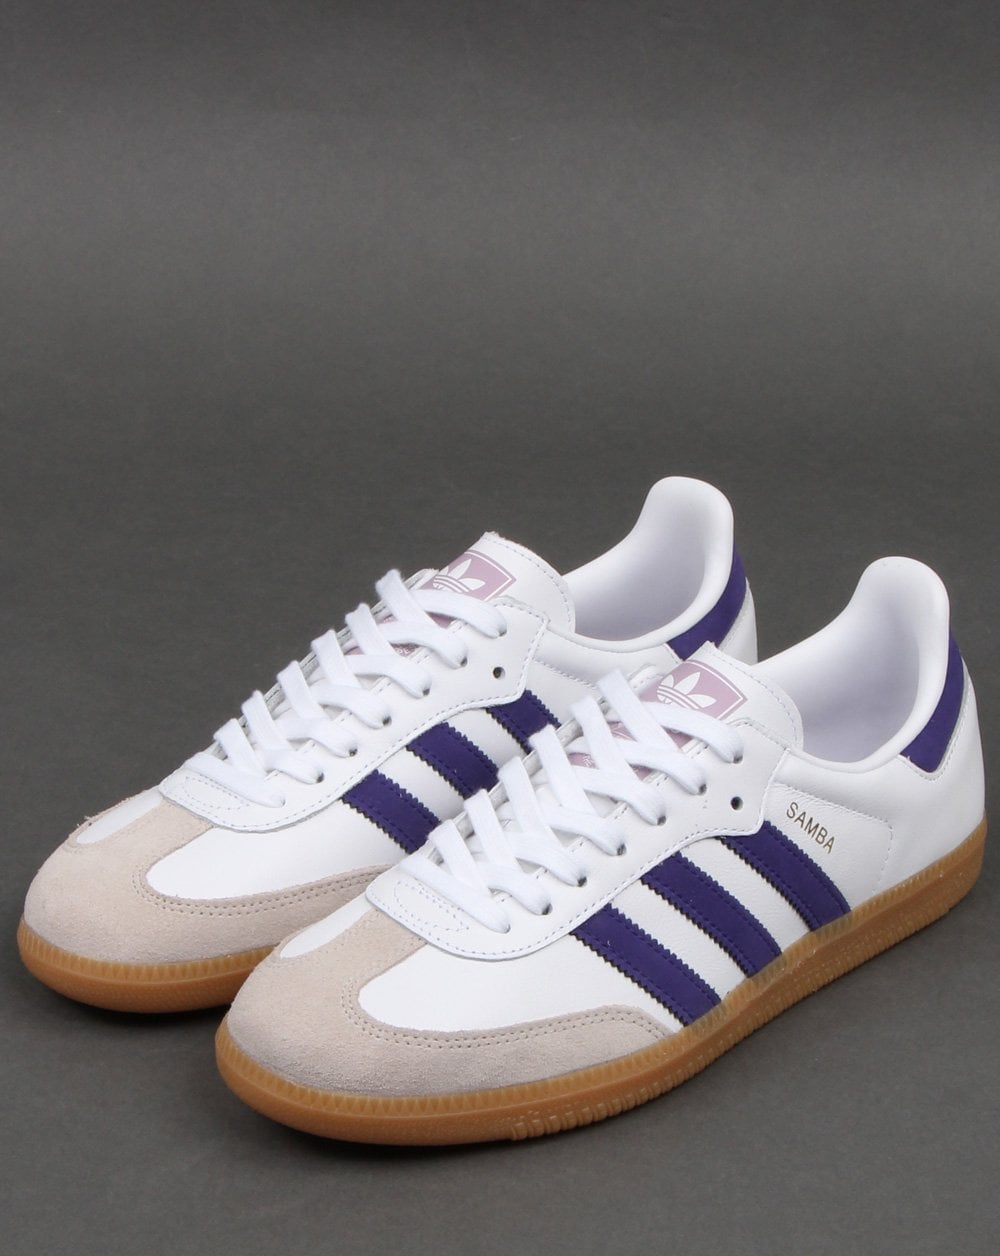 adidas Samba OG white purple